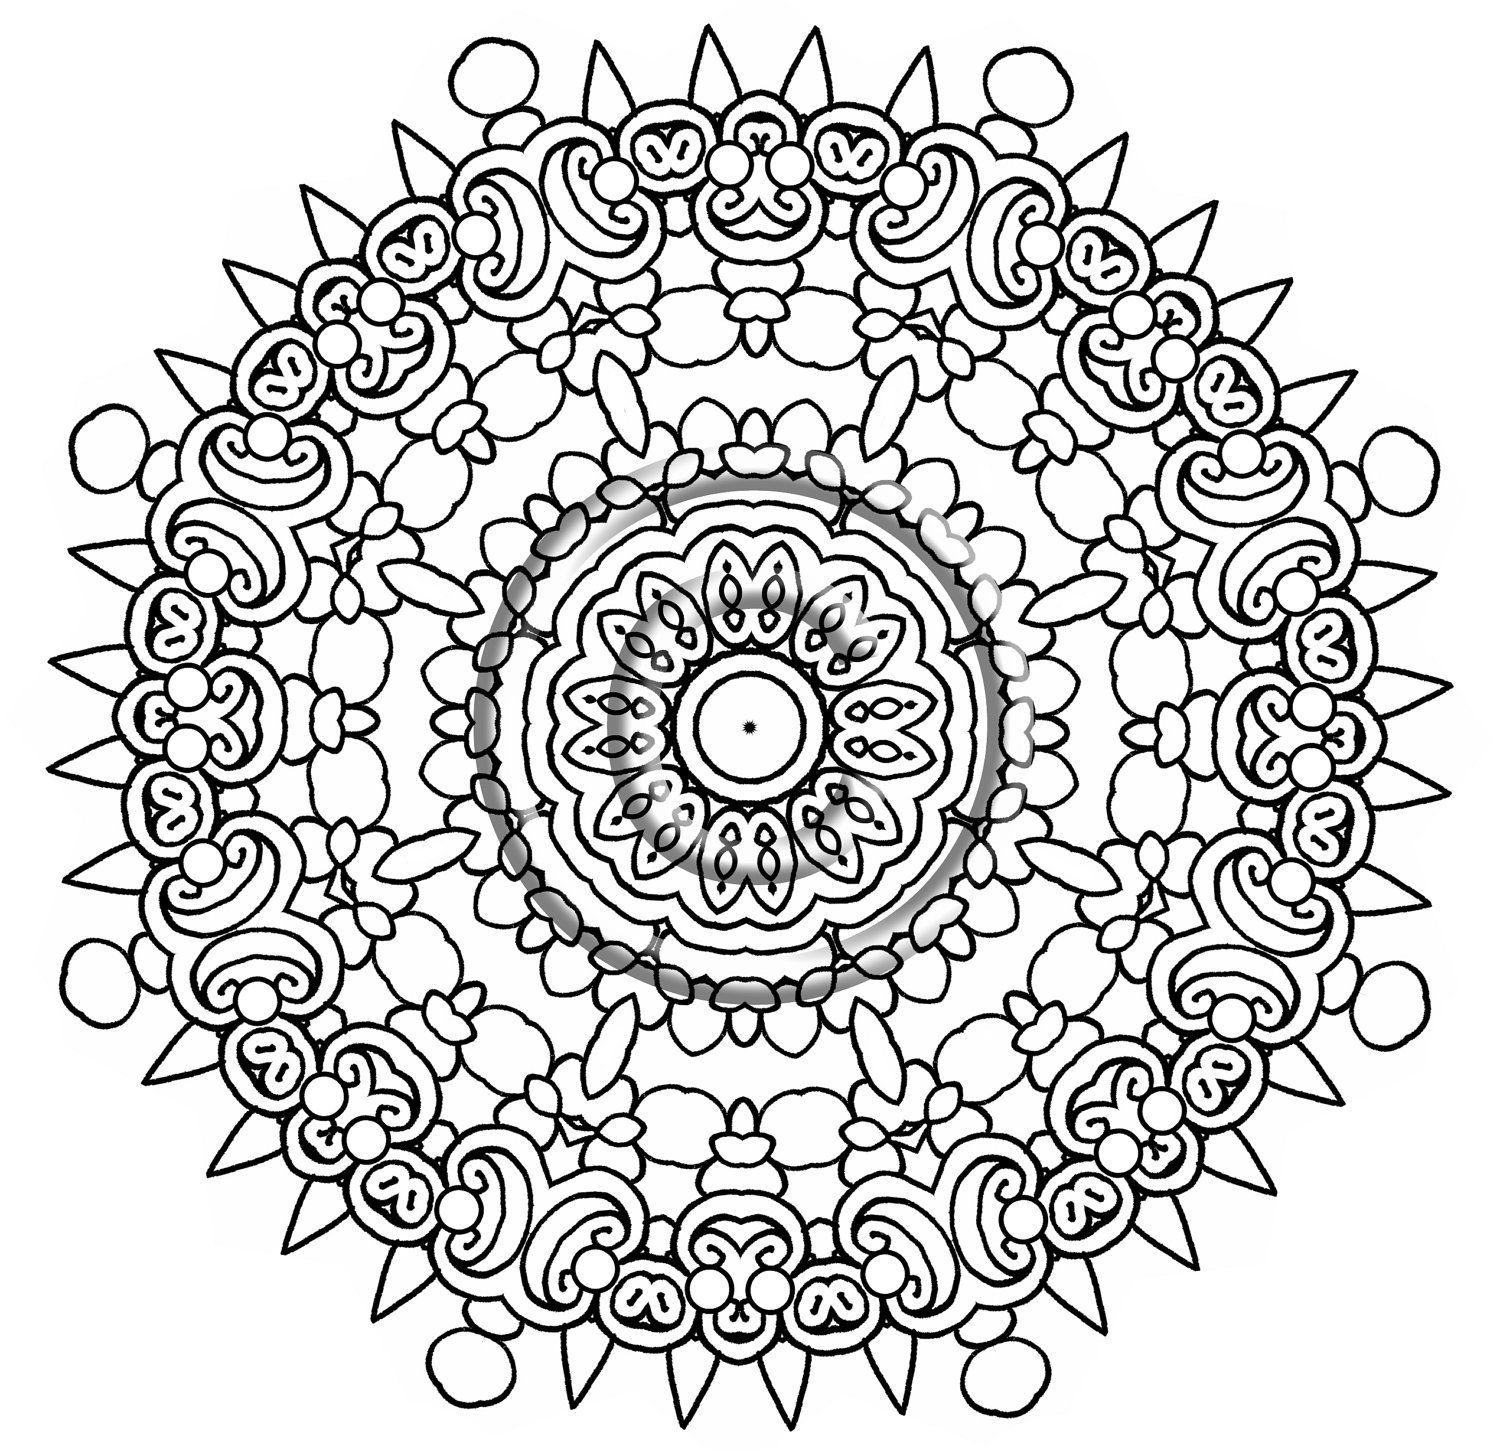 Intricate Mandala Coloring Pages - Bing Images | Coloring Pages ...